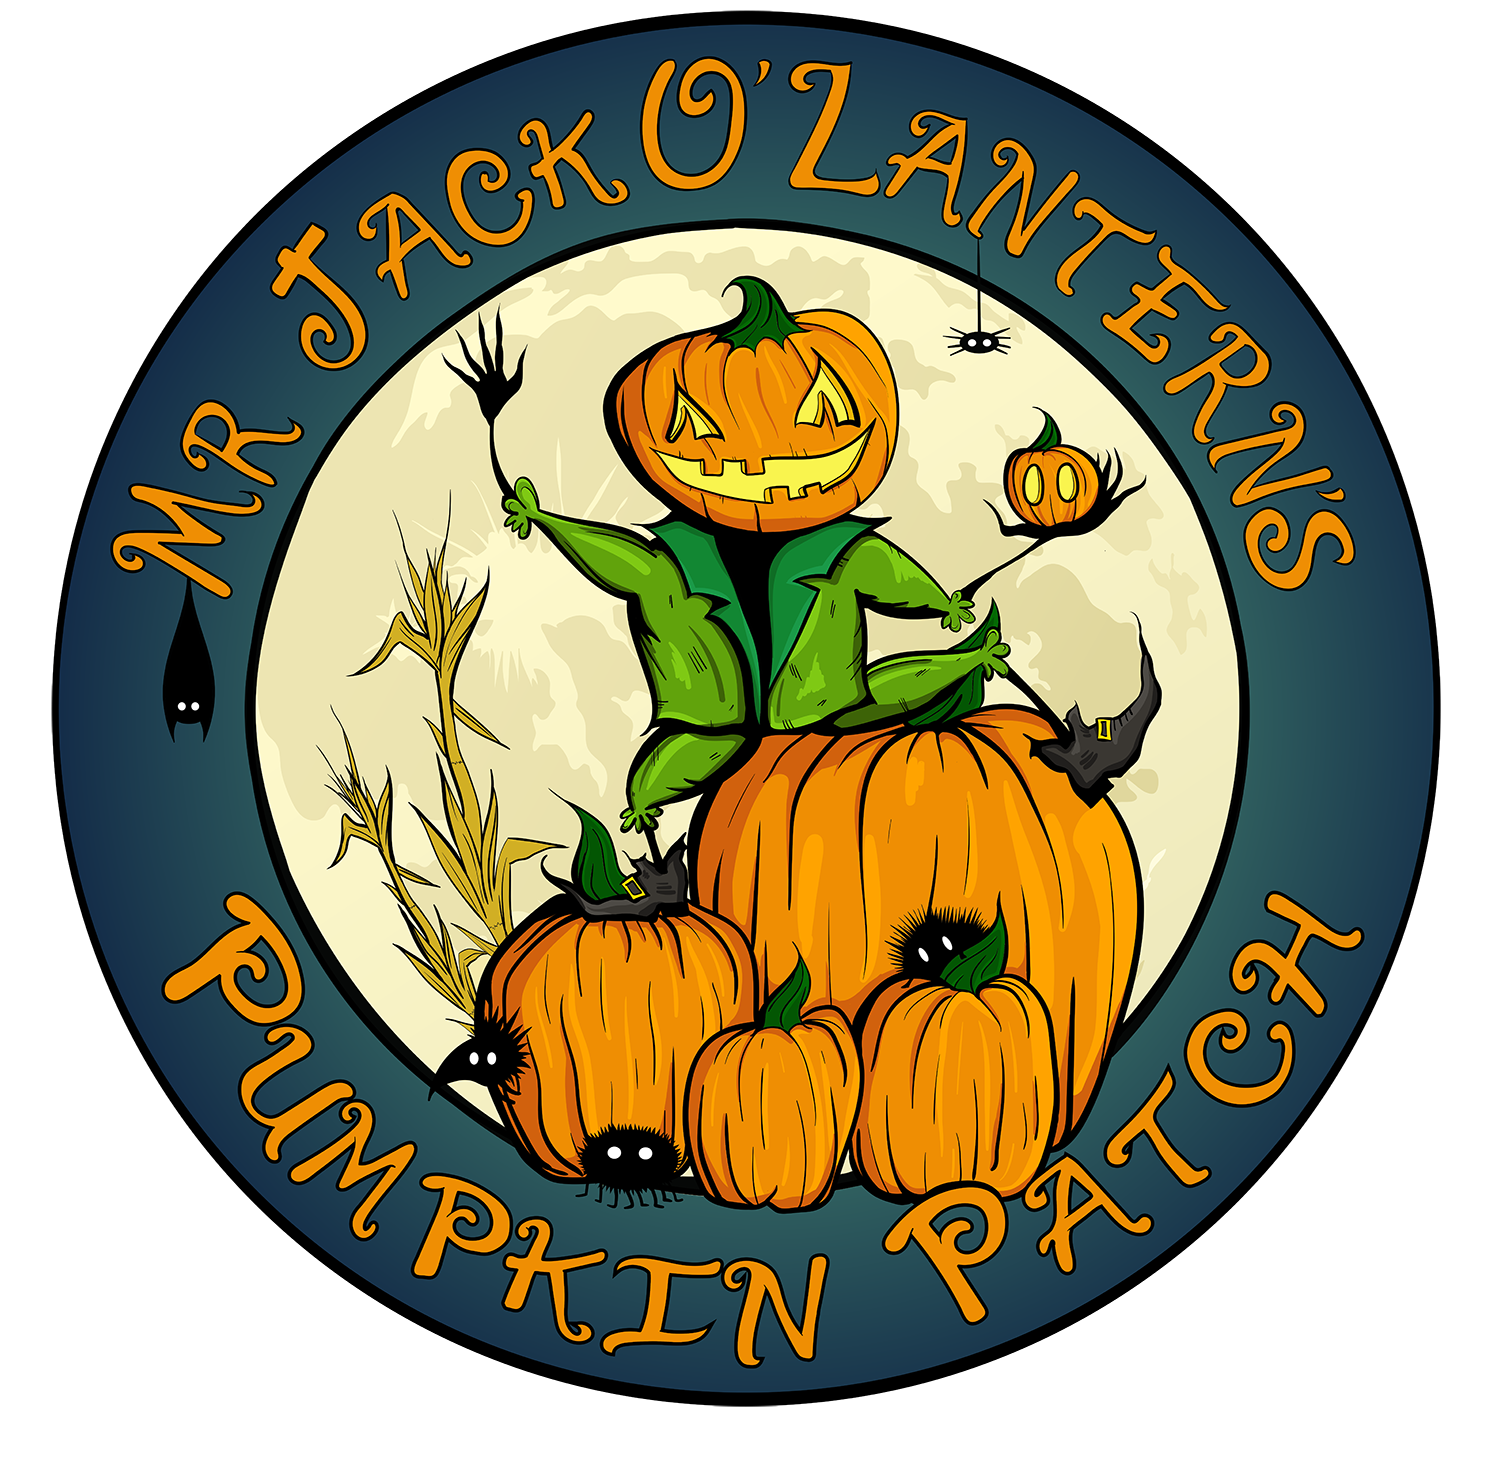 Games prizes and fun. Scary clipart scary pumpkin patch vector royalty free stock